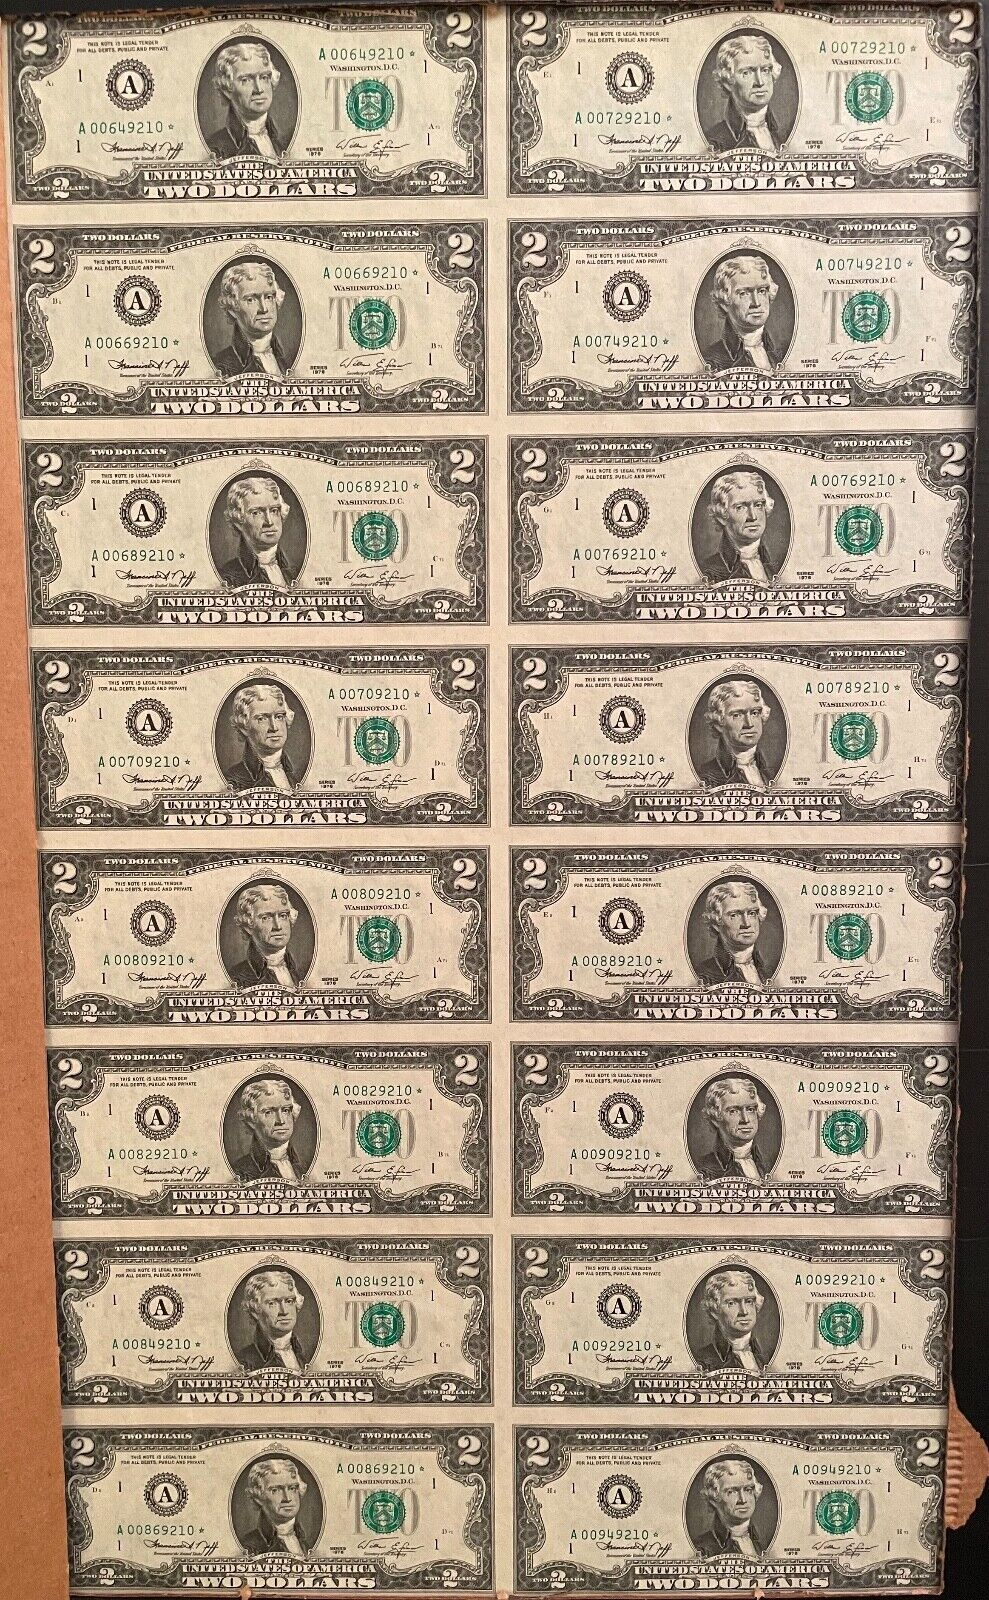 1976 Uncut Uncirculated BEP Sheet Of 16 STAR NOTES 2 Two Dollar Bills Currency  - $500.00